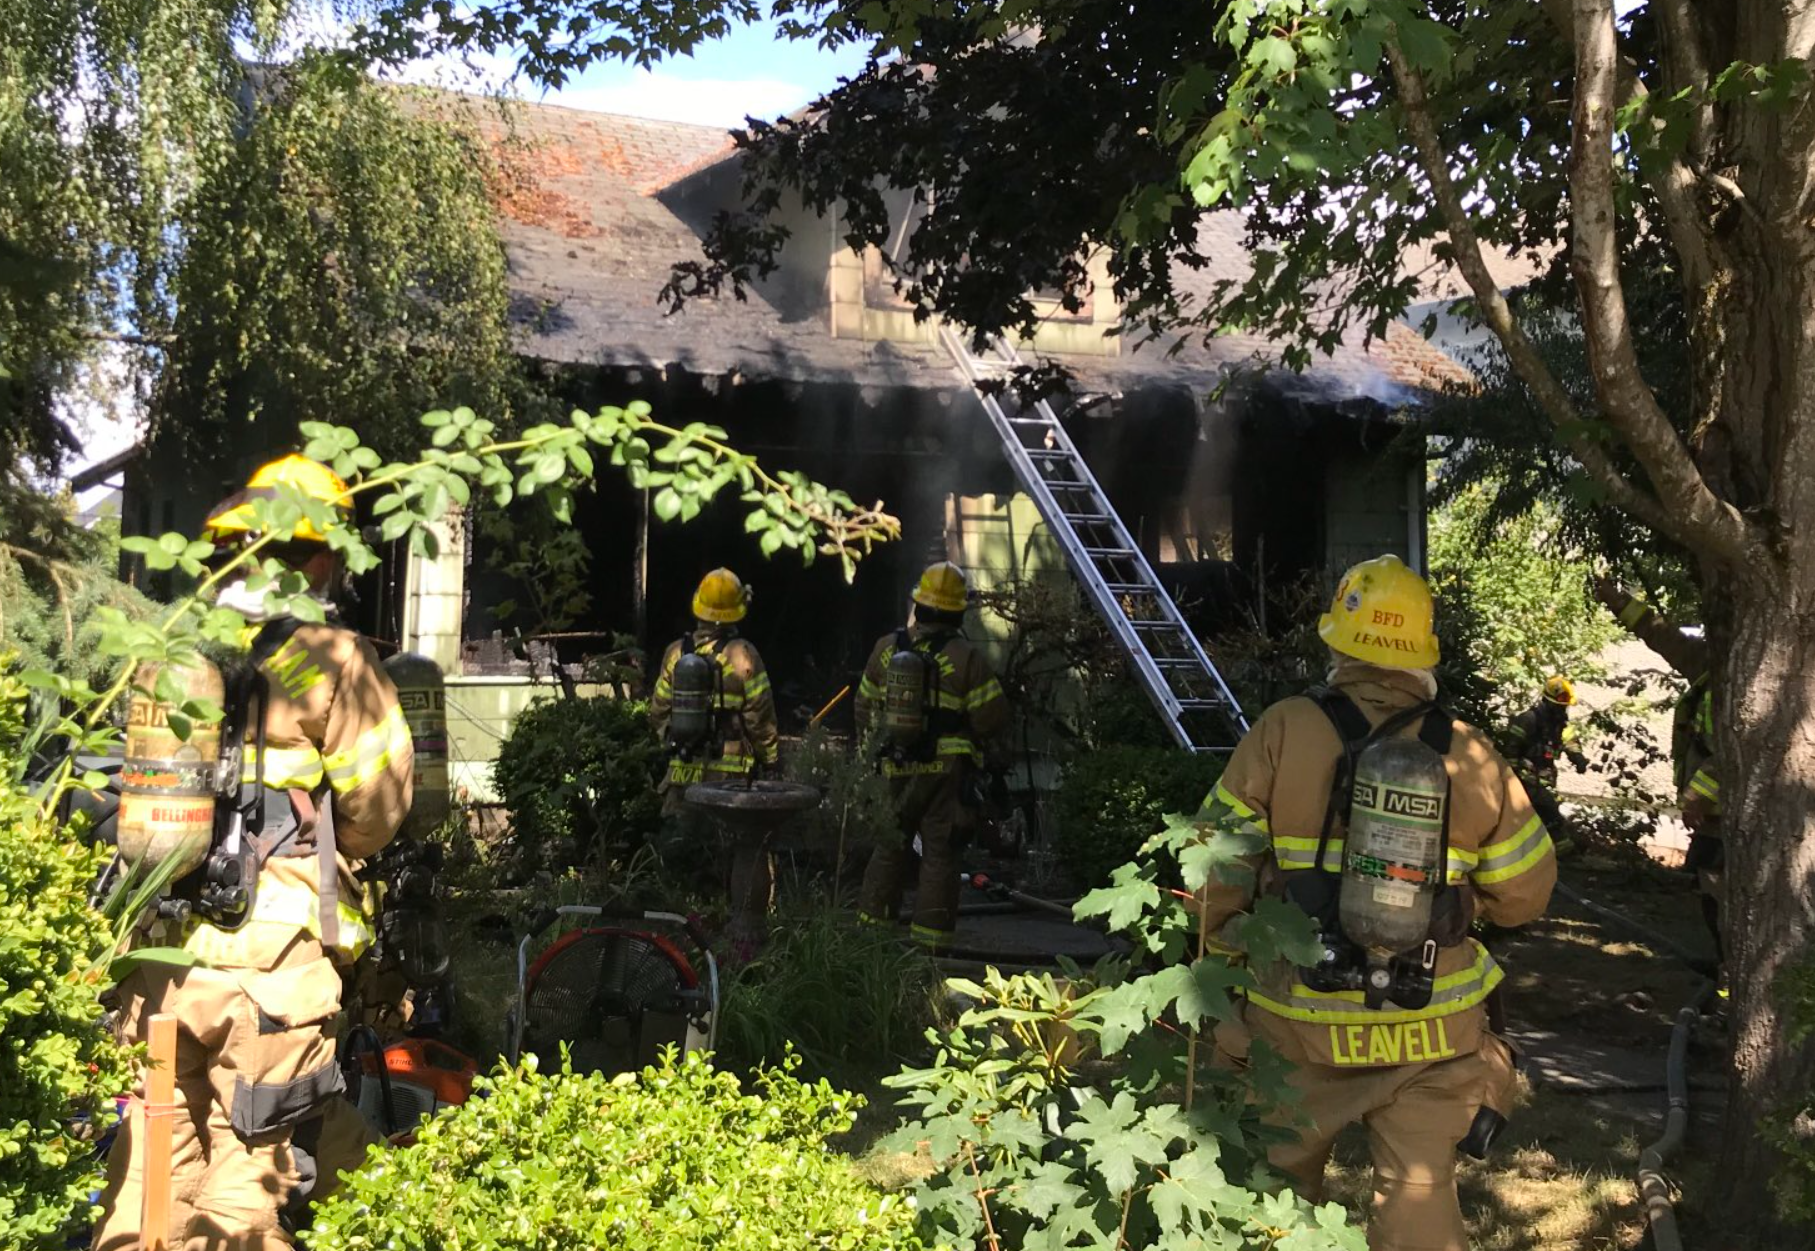 Scene of a residential fire on Billy Frank Junior Street (August 9, 2021). Photo courtesy of Bellingham Fire Department